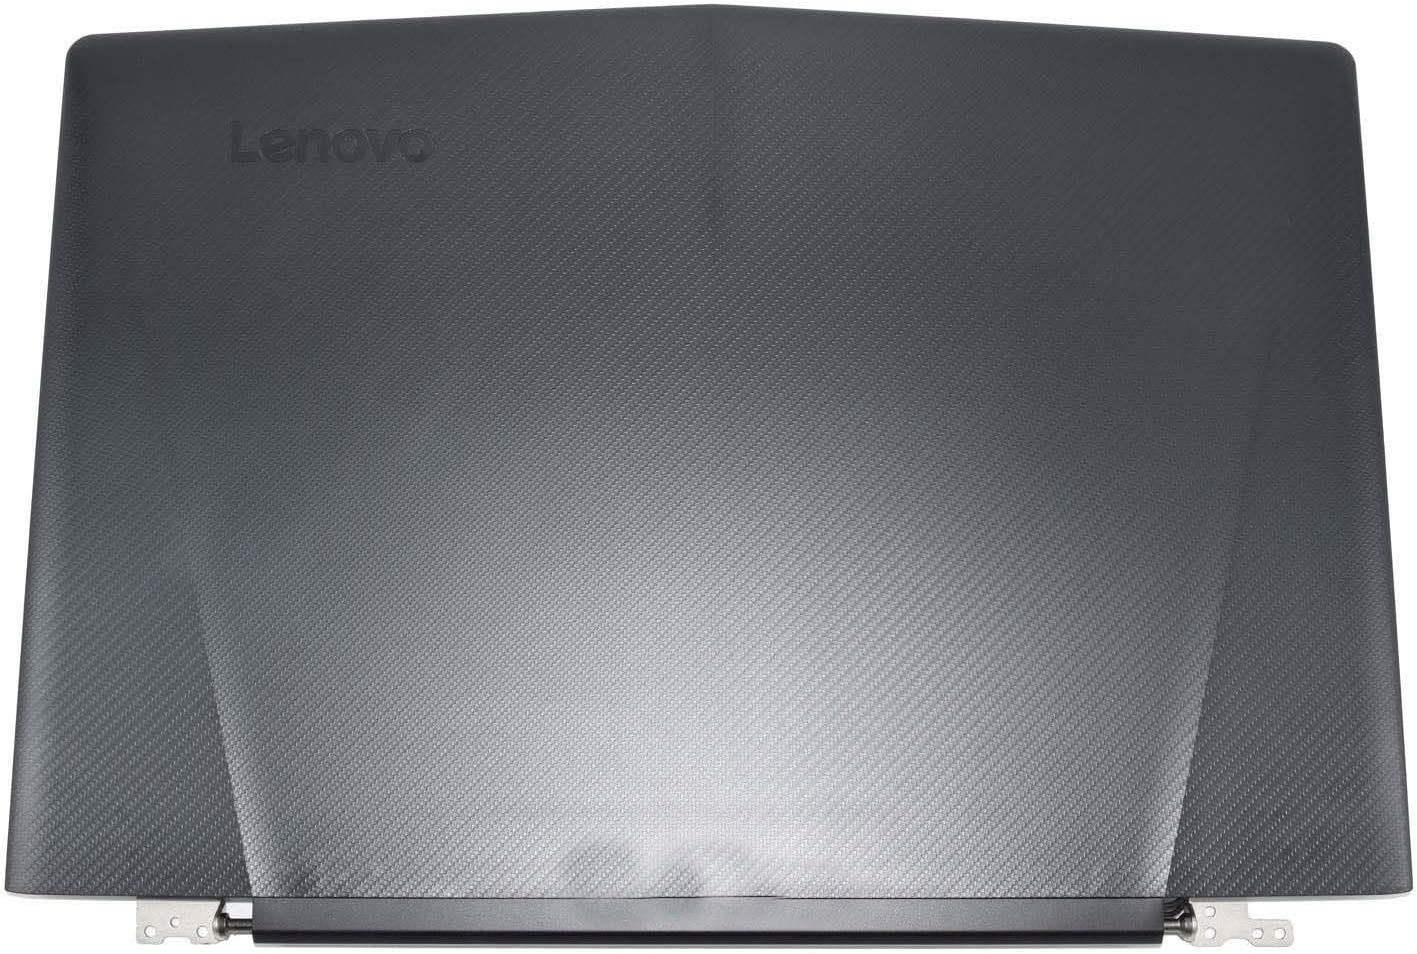 New for Lenovo Legion Y520 R720 LCD Rear Cover Back Screen Shell w/Hinges & Cable AP13B000100